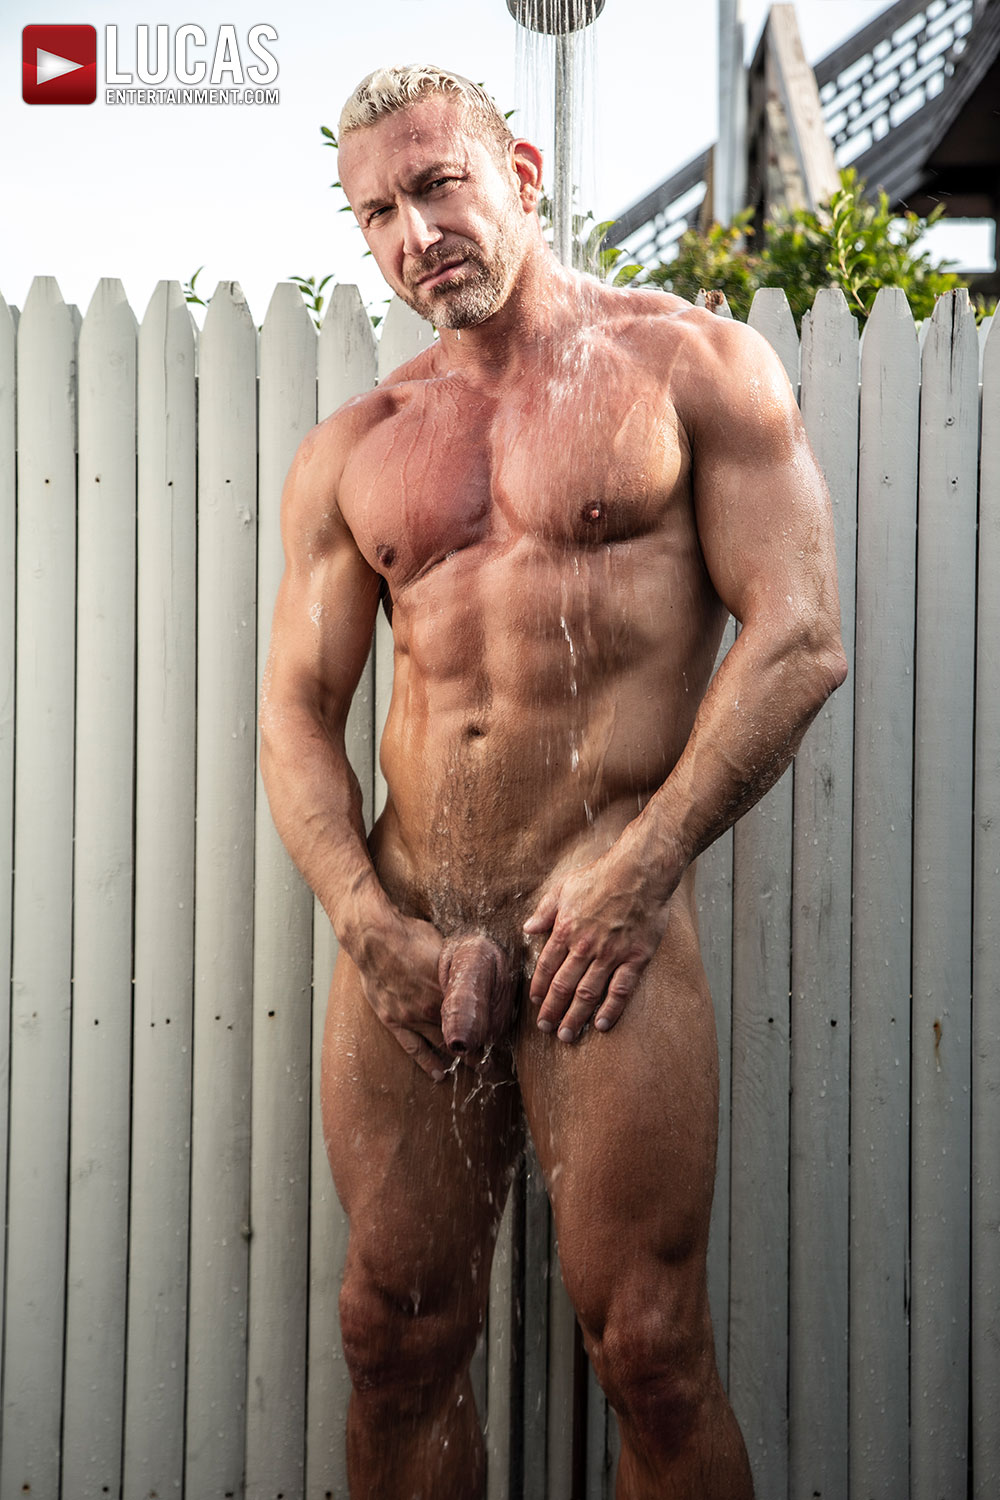 Would You Hop In The Shower With Tomas Brand?